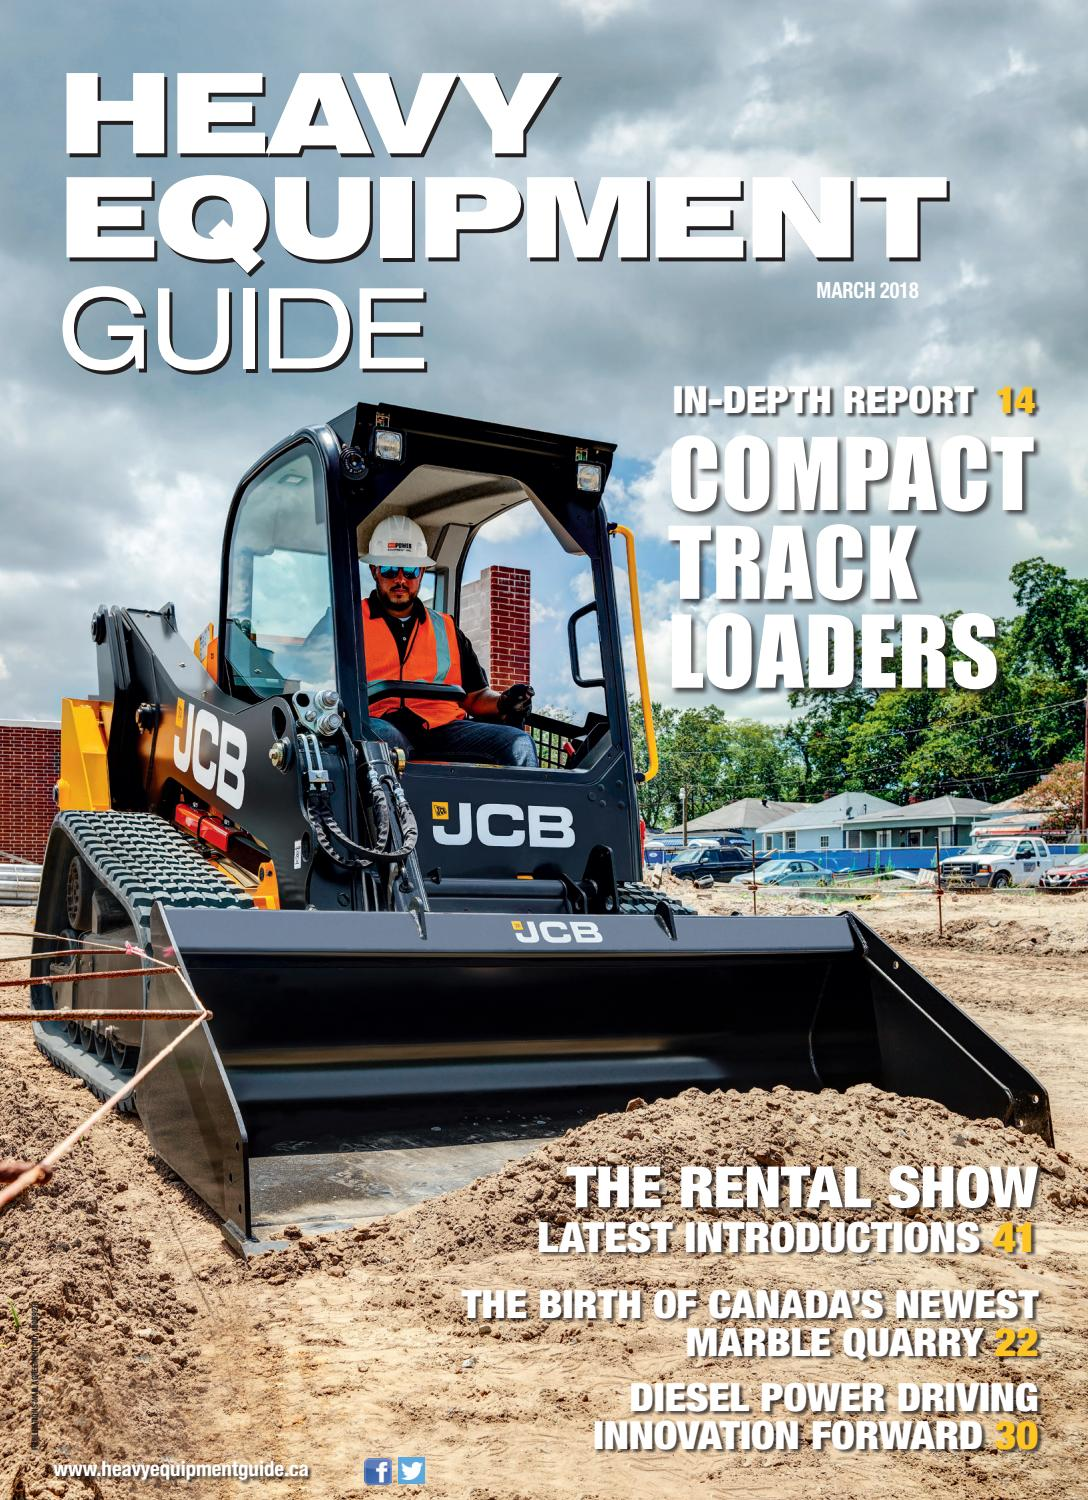 Heavy Equipment Guide March 2018, Volume 22, Number 3 by Baum Publications  Ltd. - issuu